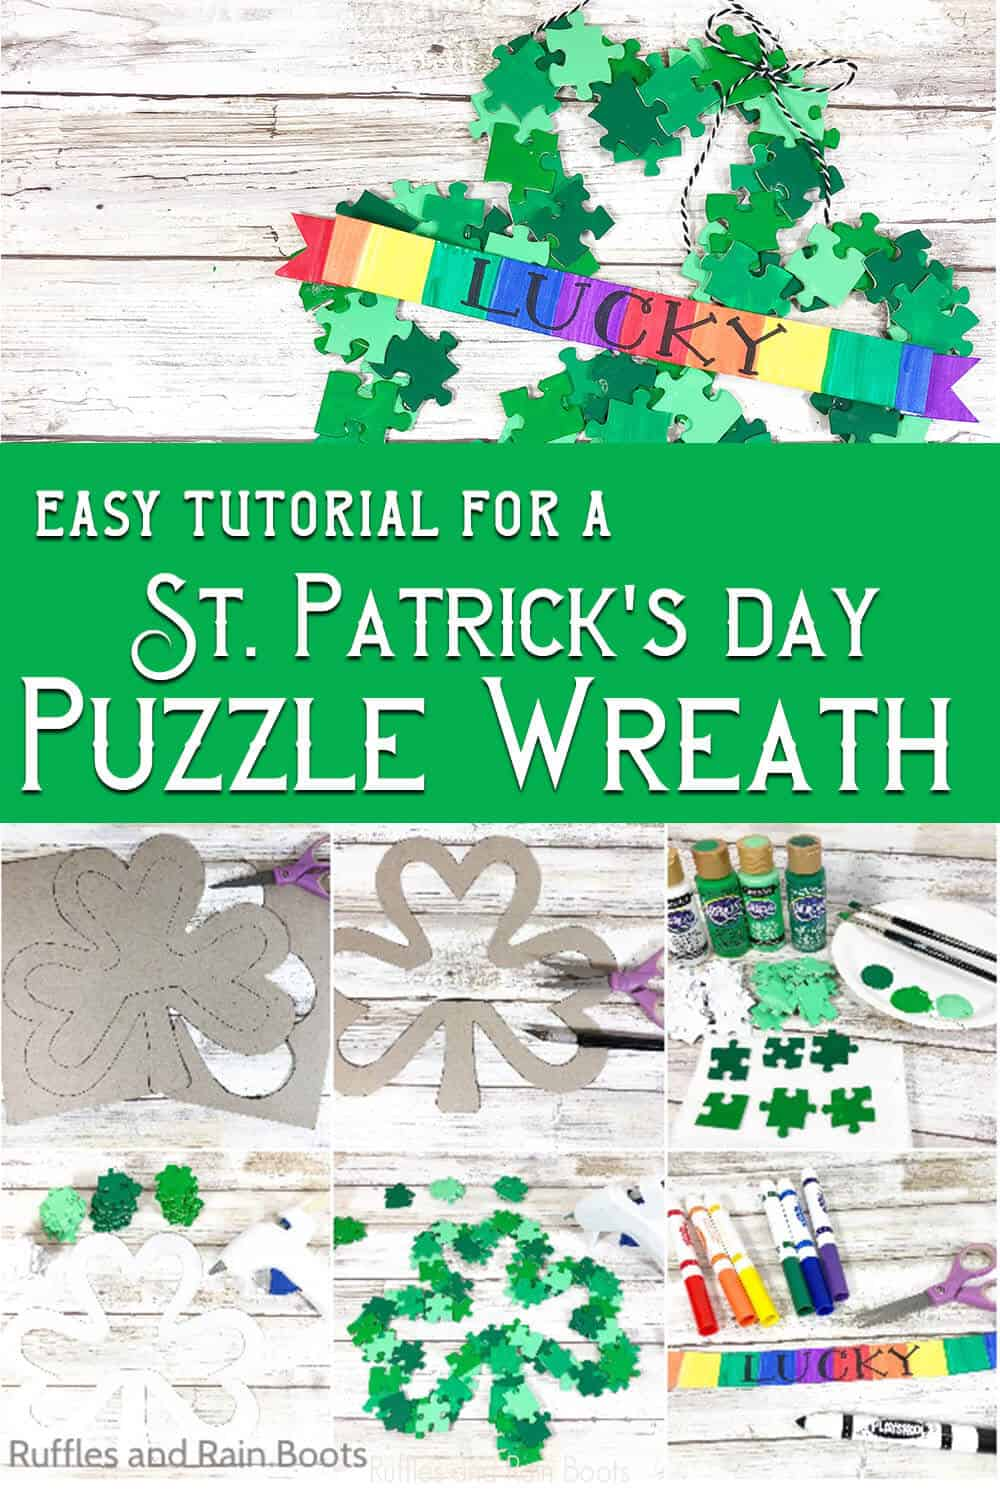 photo collage tutorial of saint patrick's day puzzle wreath with text which reads easy tutorial for a St. patrick's day puzzle wreath